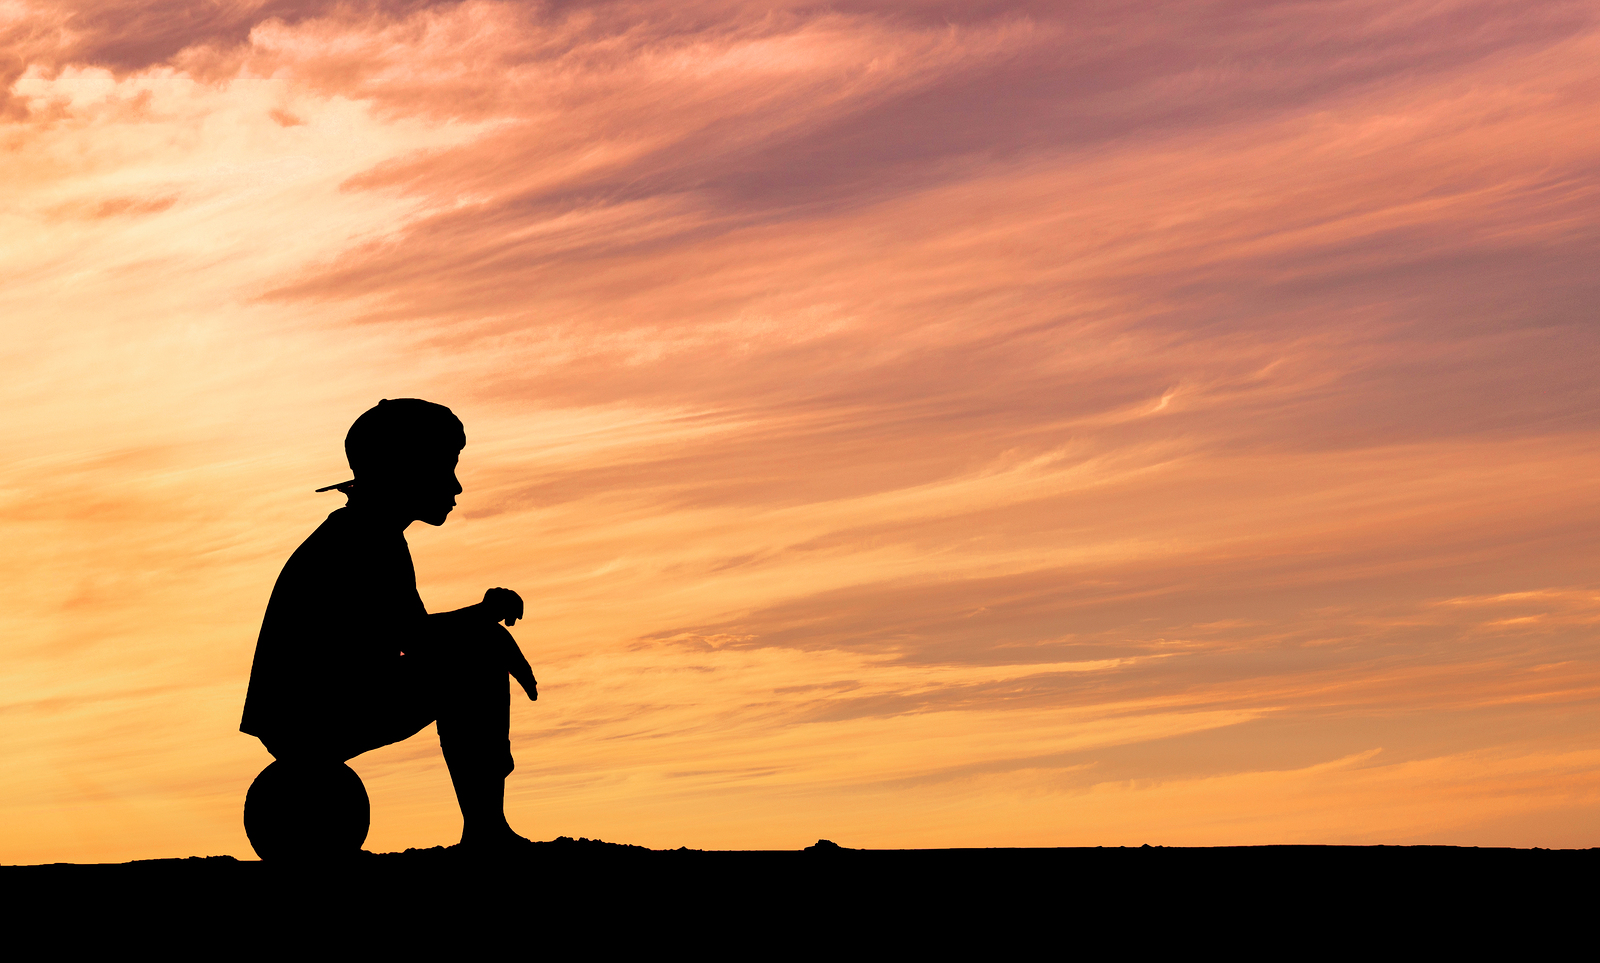 bigstock Silhouette of a boy sitting on 95675969